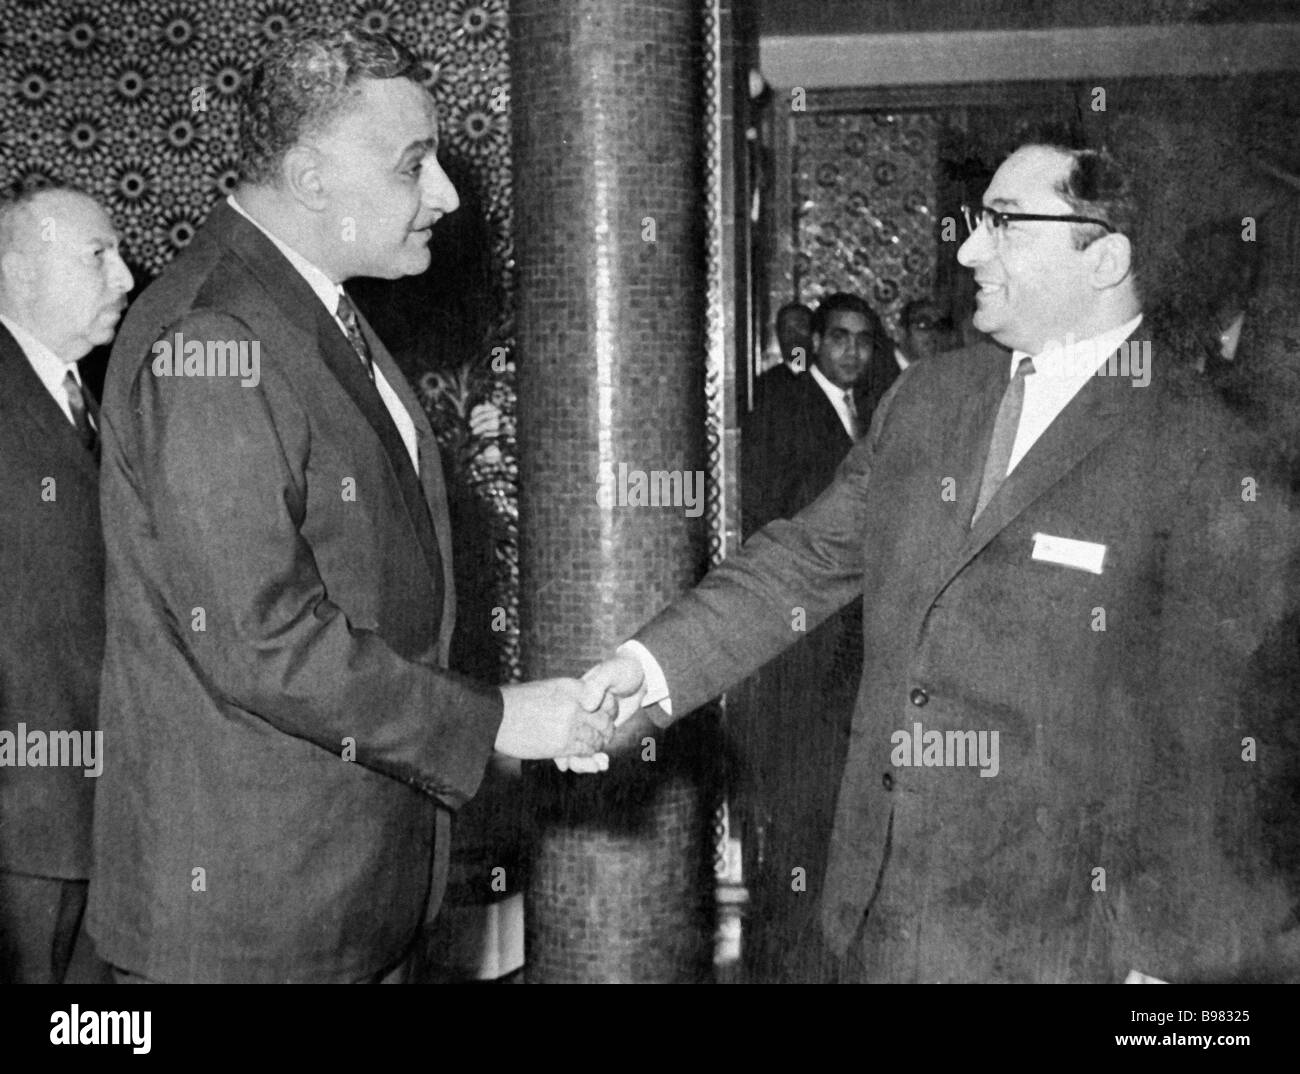 Egyptian President Gamal Abdel Nasser left greets Doctor of Philology and Arabic language professor Grigory Sharbatov - Stock Image